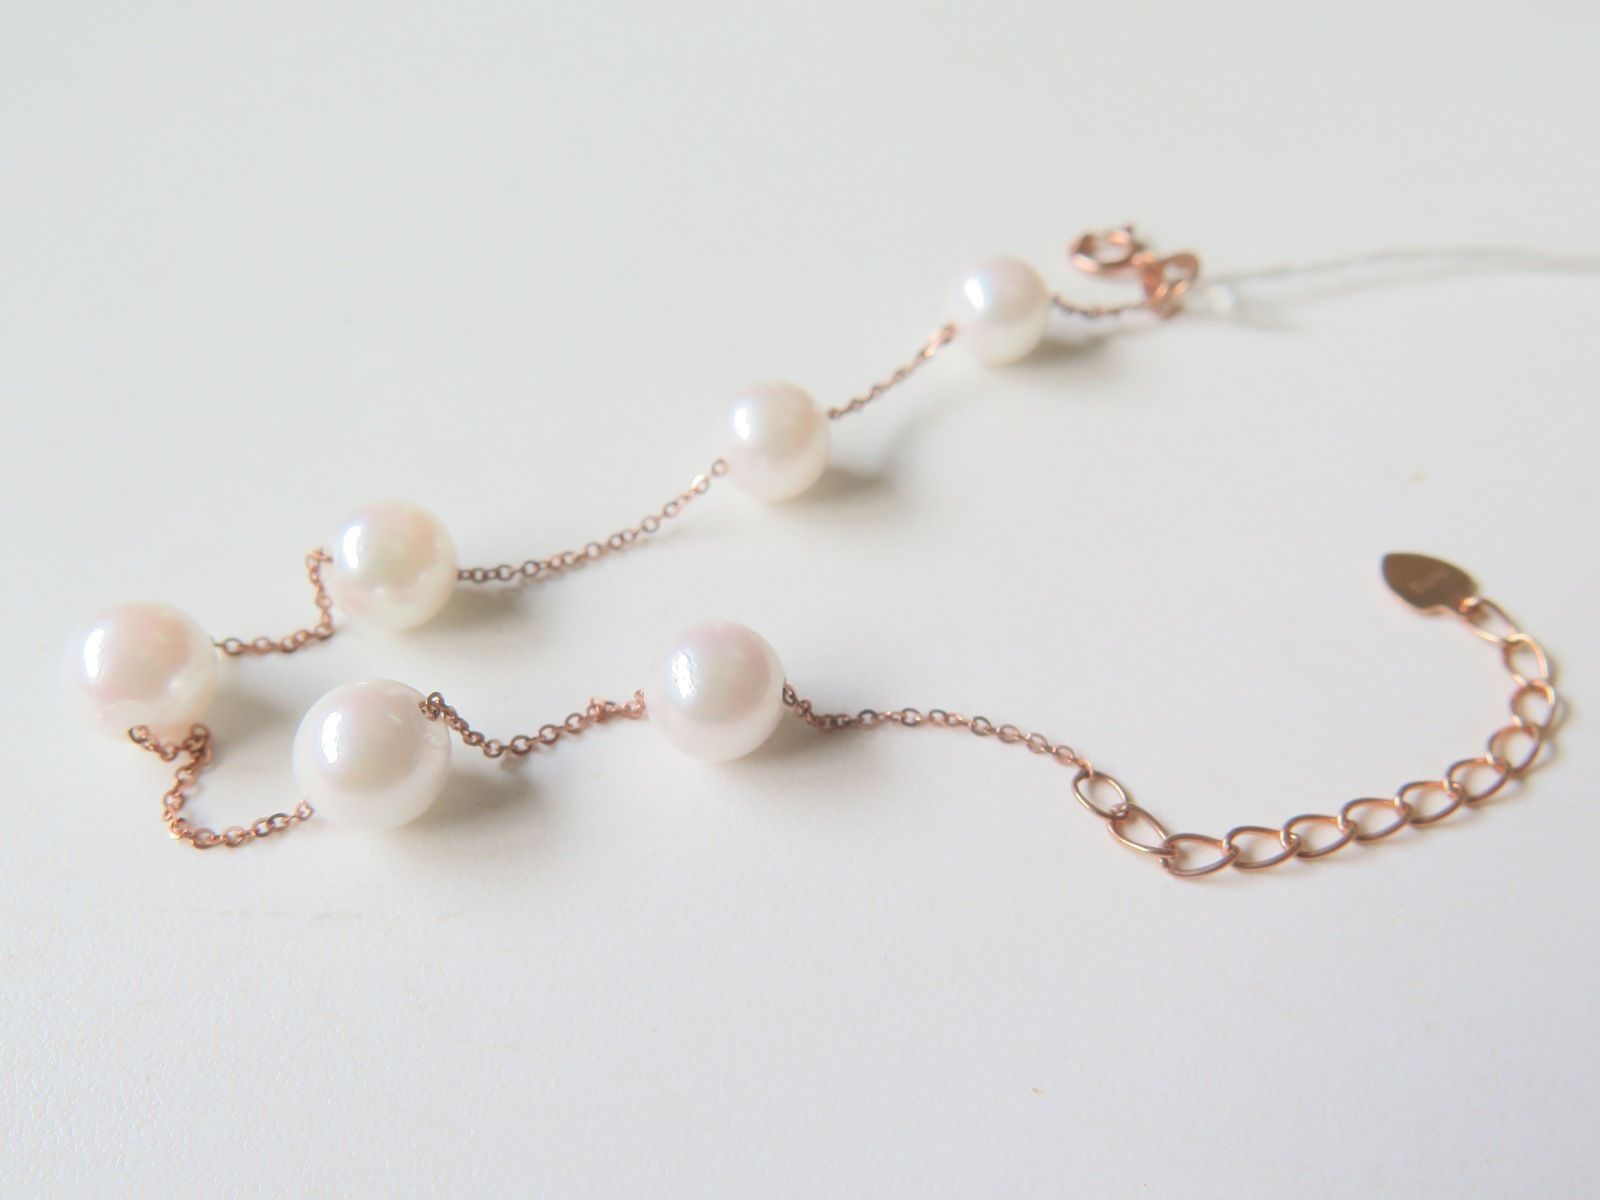 AU750 Pure 18K Rose Gold Women Perfect Pearl Beads O Link Chain BraceletAU750 Pure 18K Rose Gold Women Perfect Pearl Beads O Link Chain Bracelet